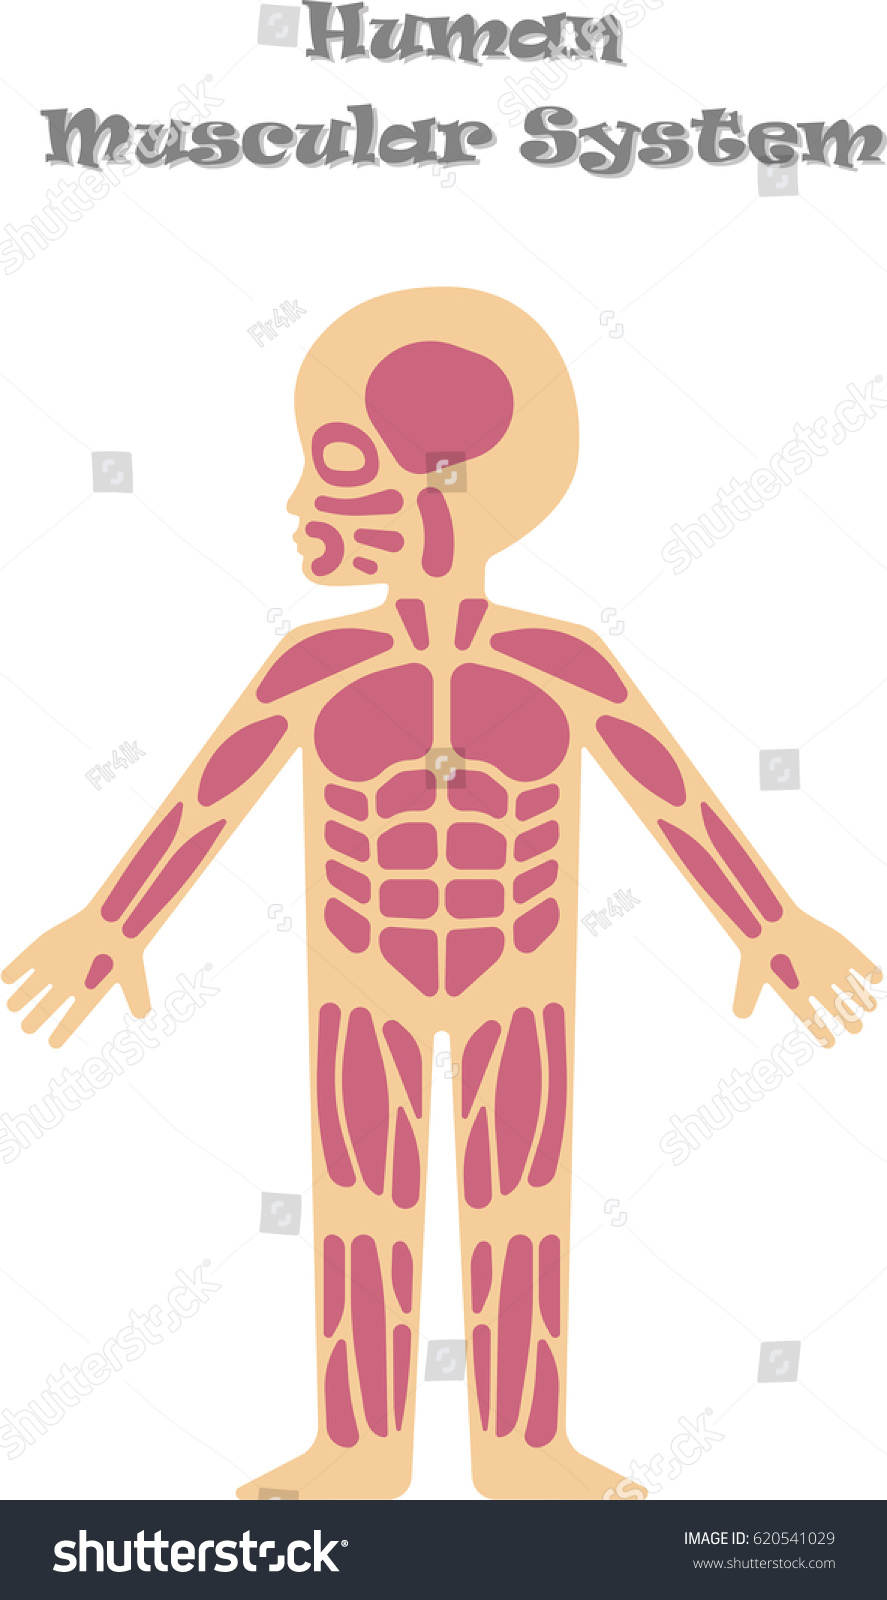 Human Muscular System Kids Cartoon Illustration Stock Vector